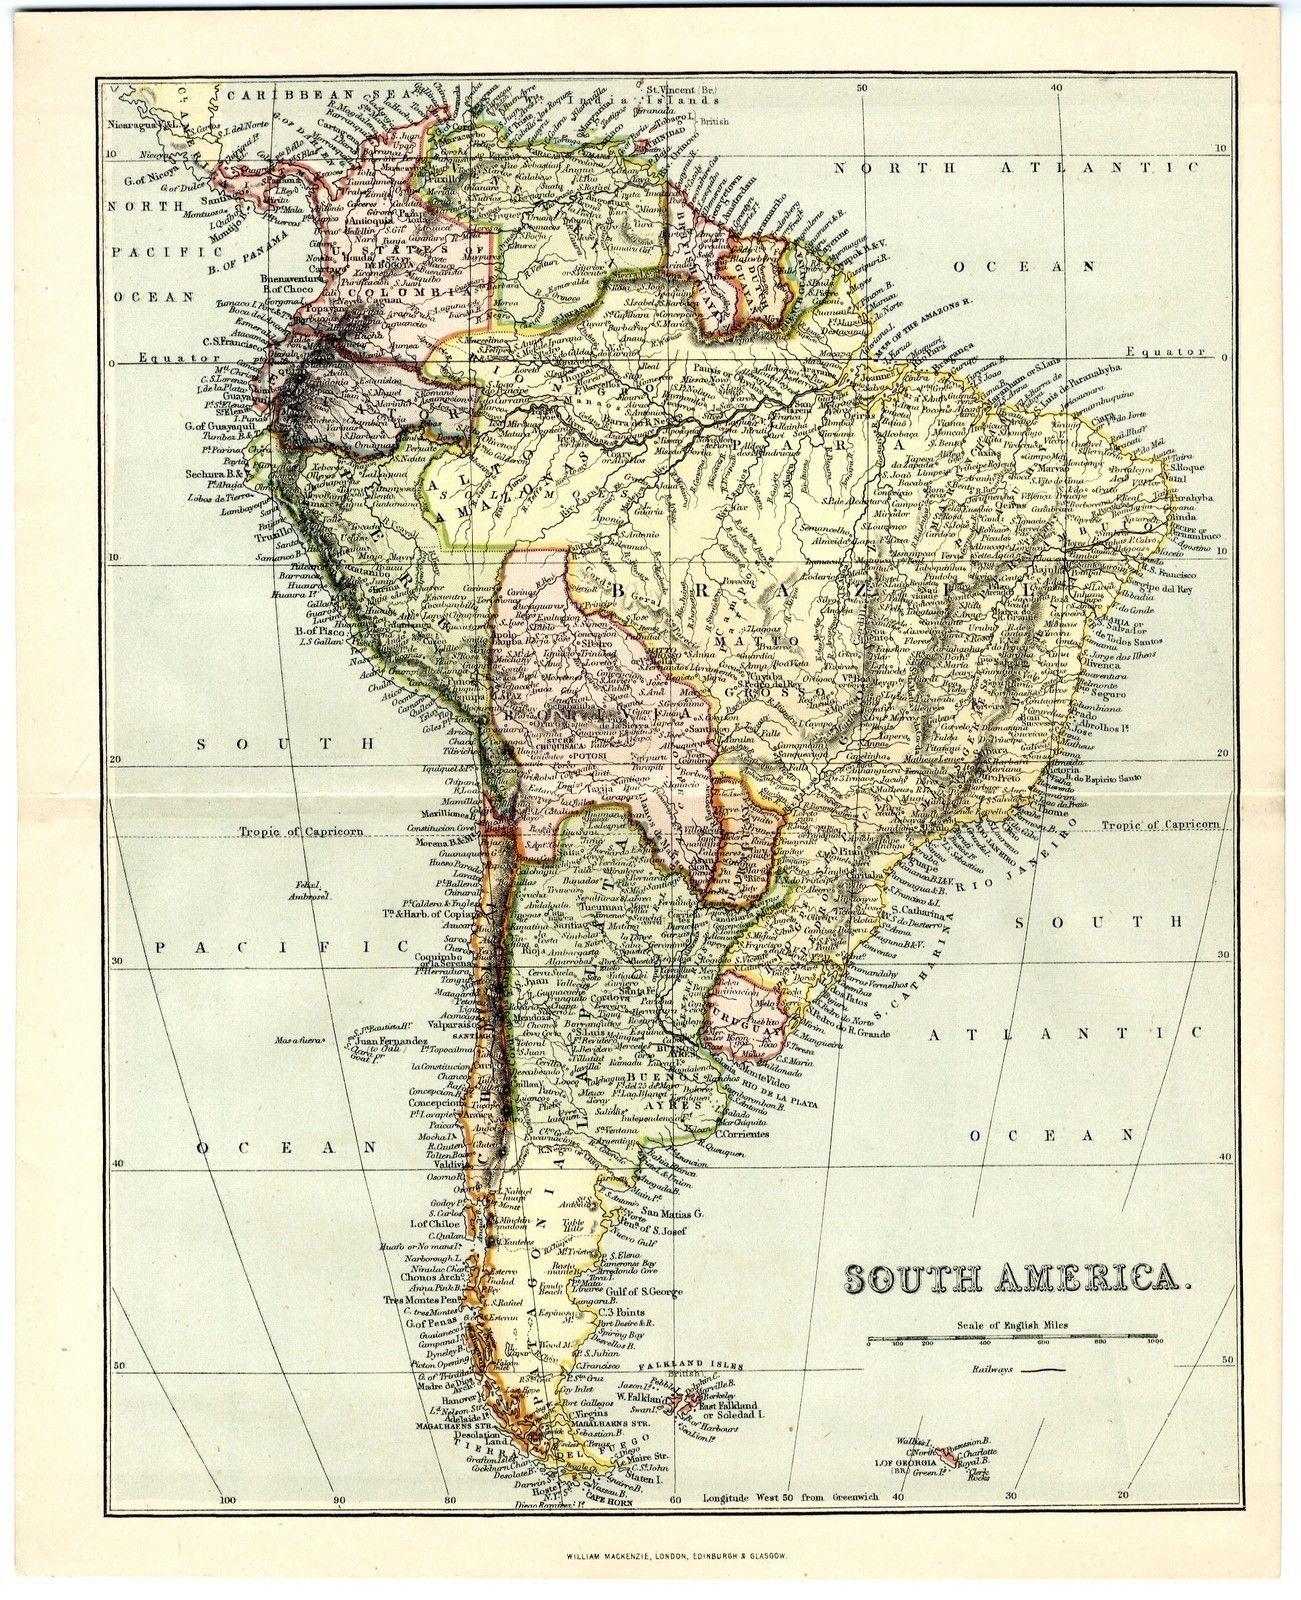 S America Map on america state map, usa map, texas map, greece's map, europe map, latin america map, kenya's map, portugal's map, brazil's map, indonesia's map, south america map, central america map, canada map, world map, mexico map, africa map, jamaica's map, asia map, c america map, north america map,